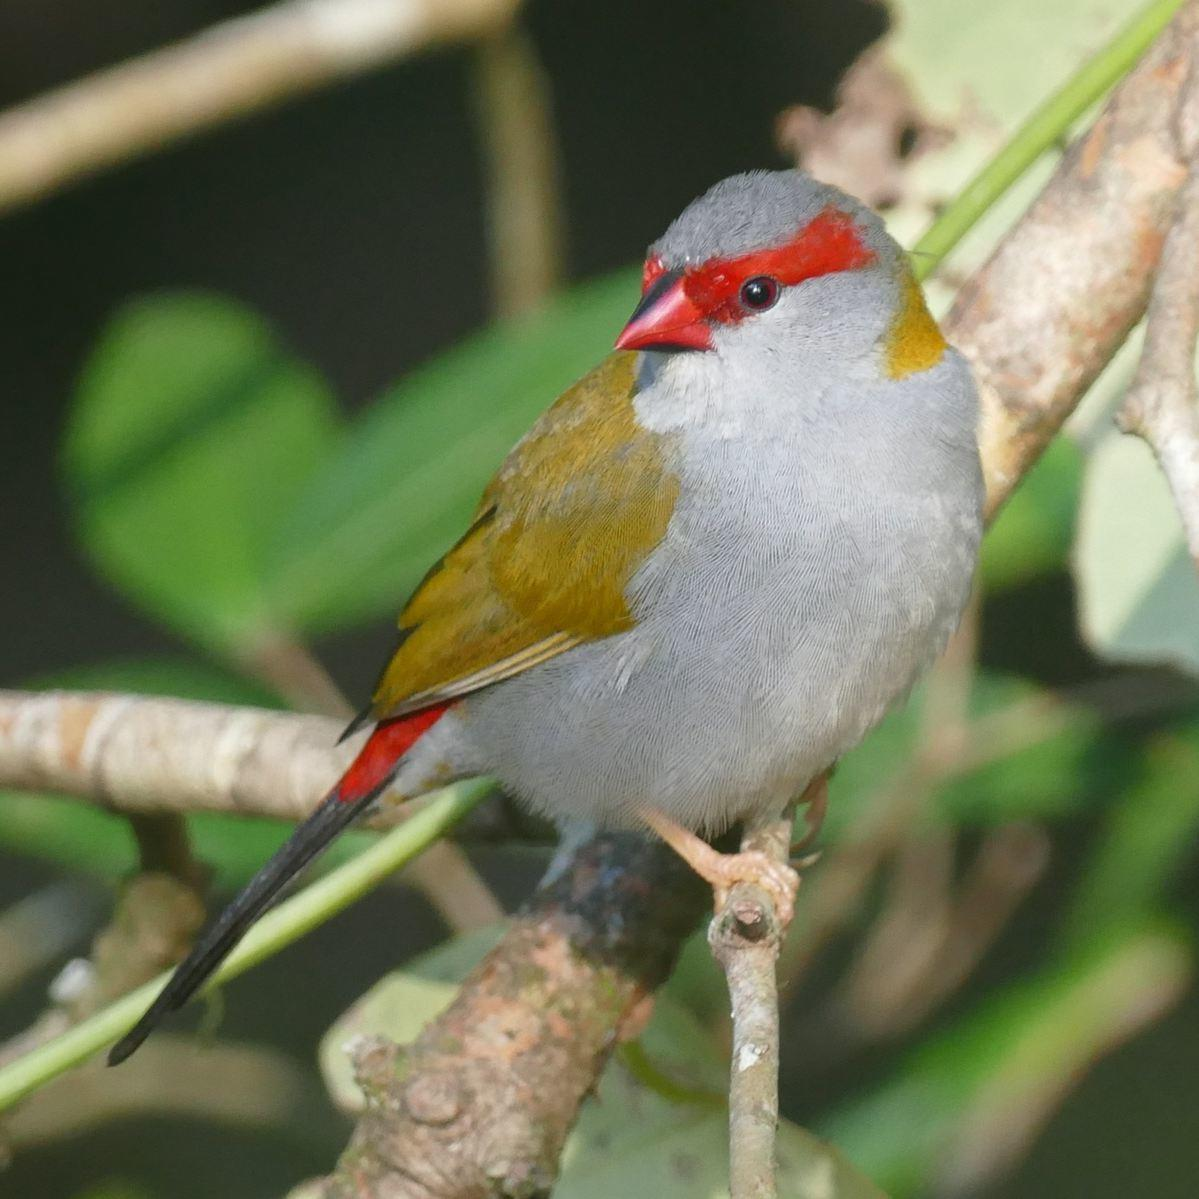 A Red-browed Firetail perches at Kingfisher Park. Noah Strycker